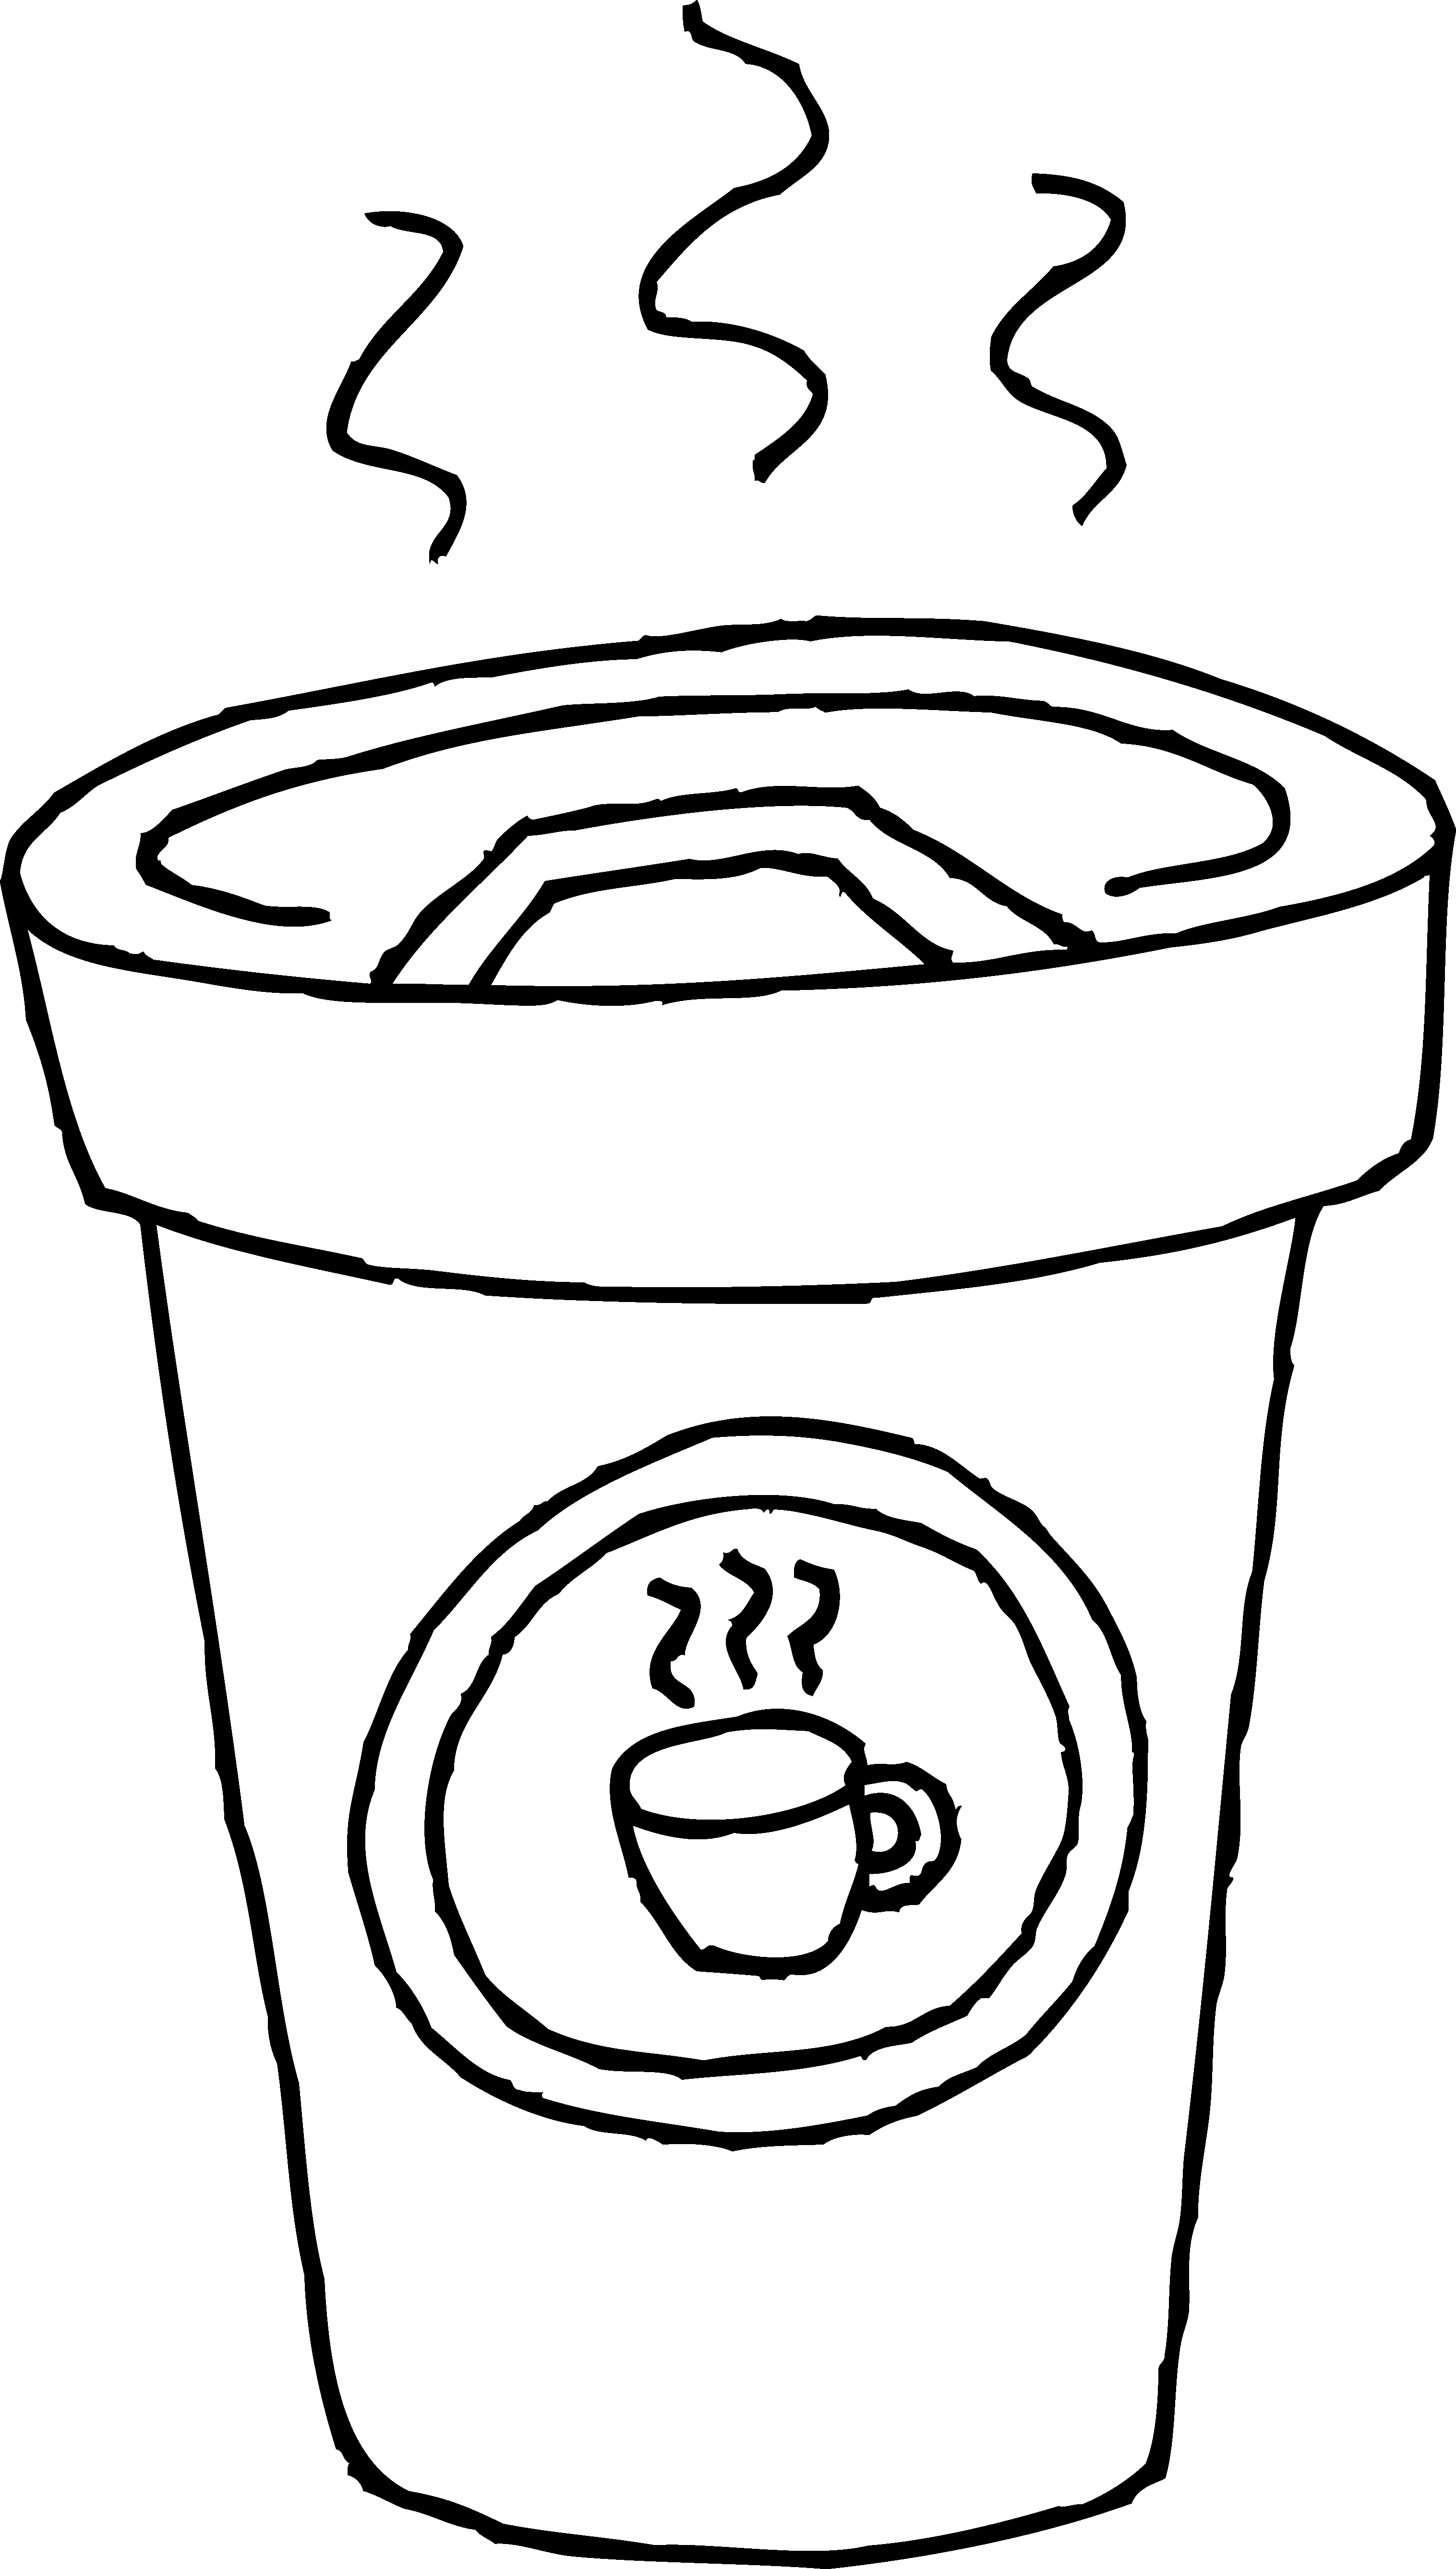 Latte clipart coffee drawing. Cup of coloring page